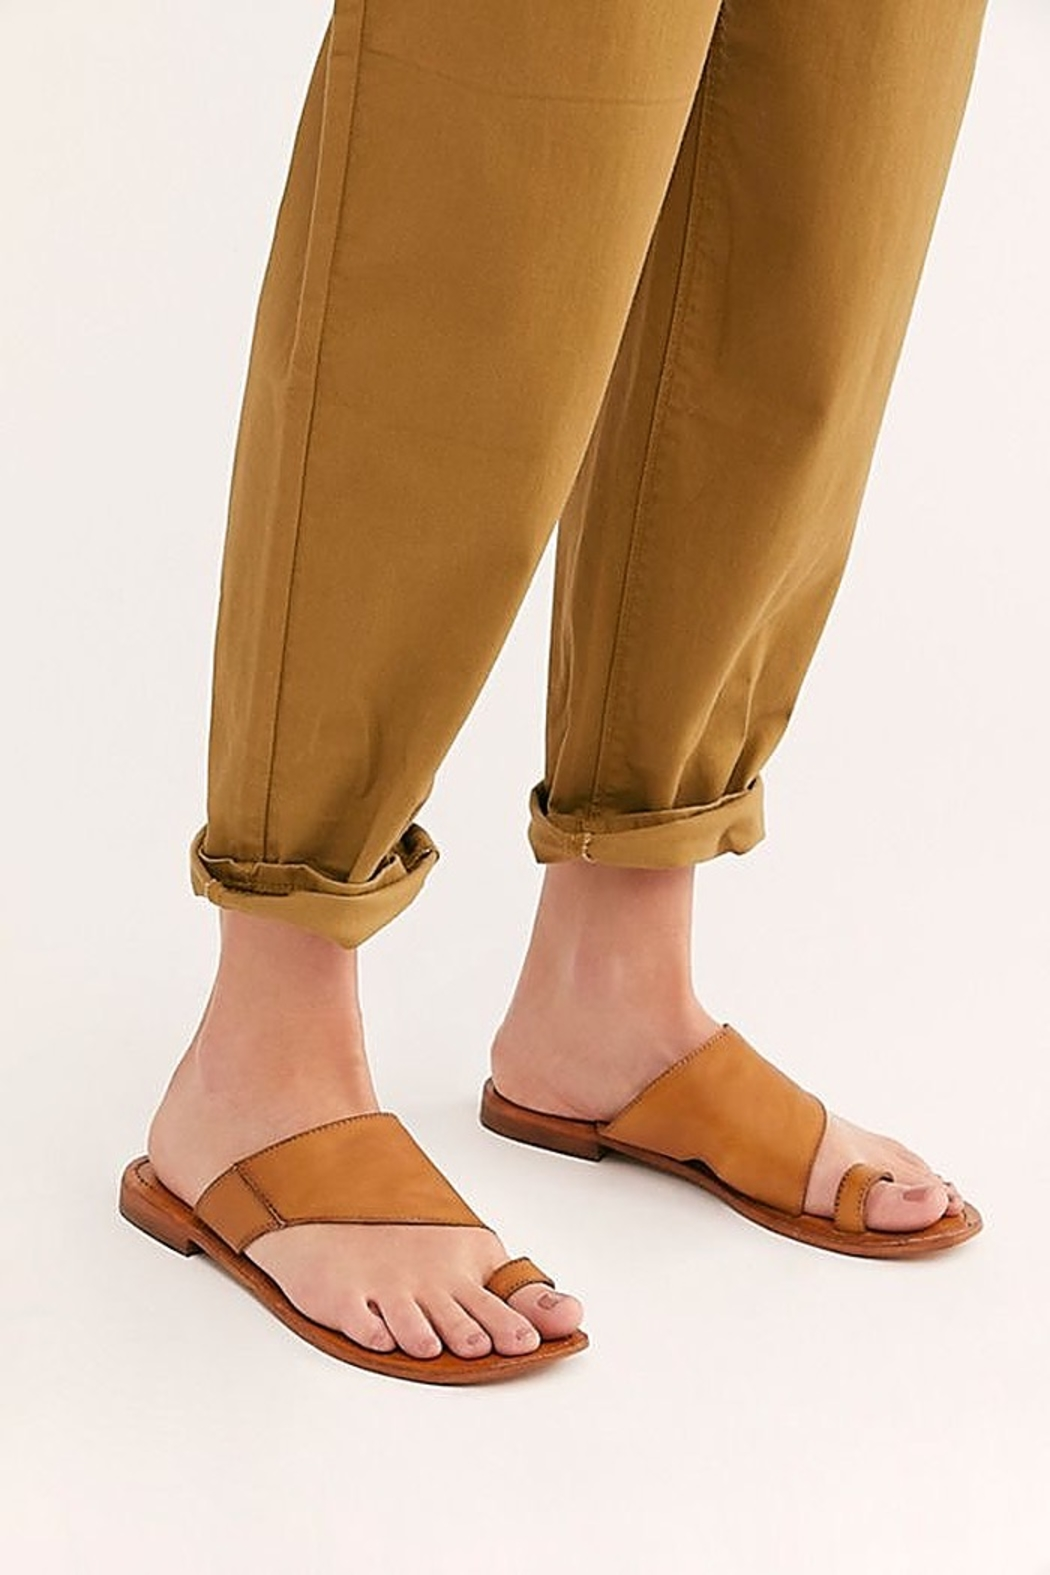 Free People Shoes Sant Antoni Slide Sandal - Front Full Image